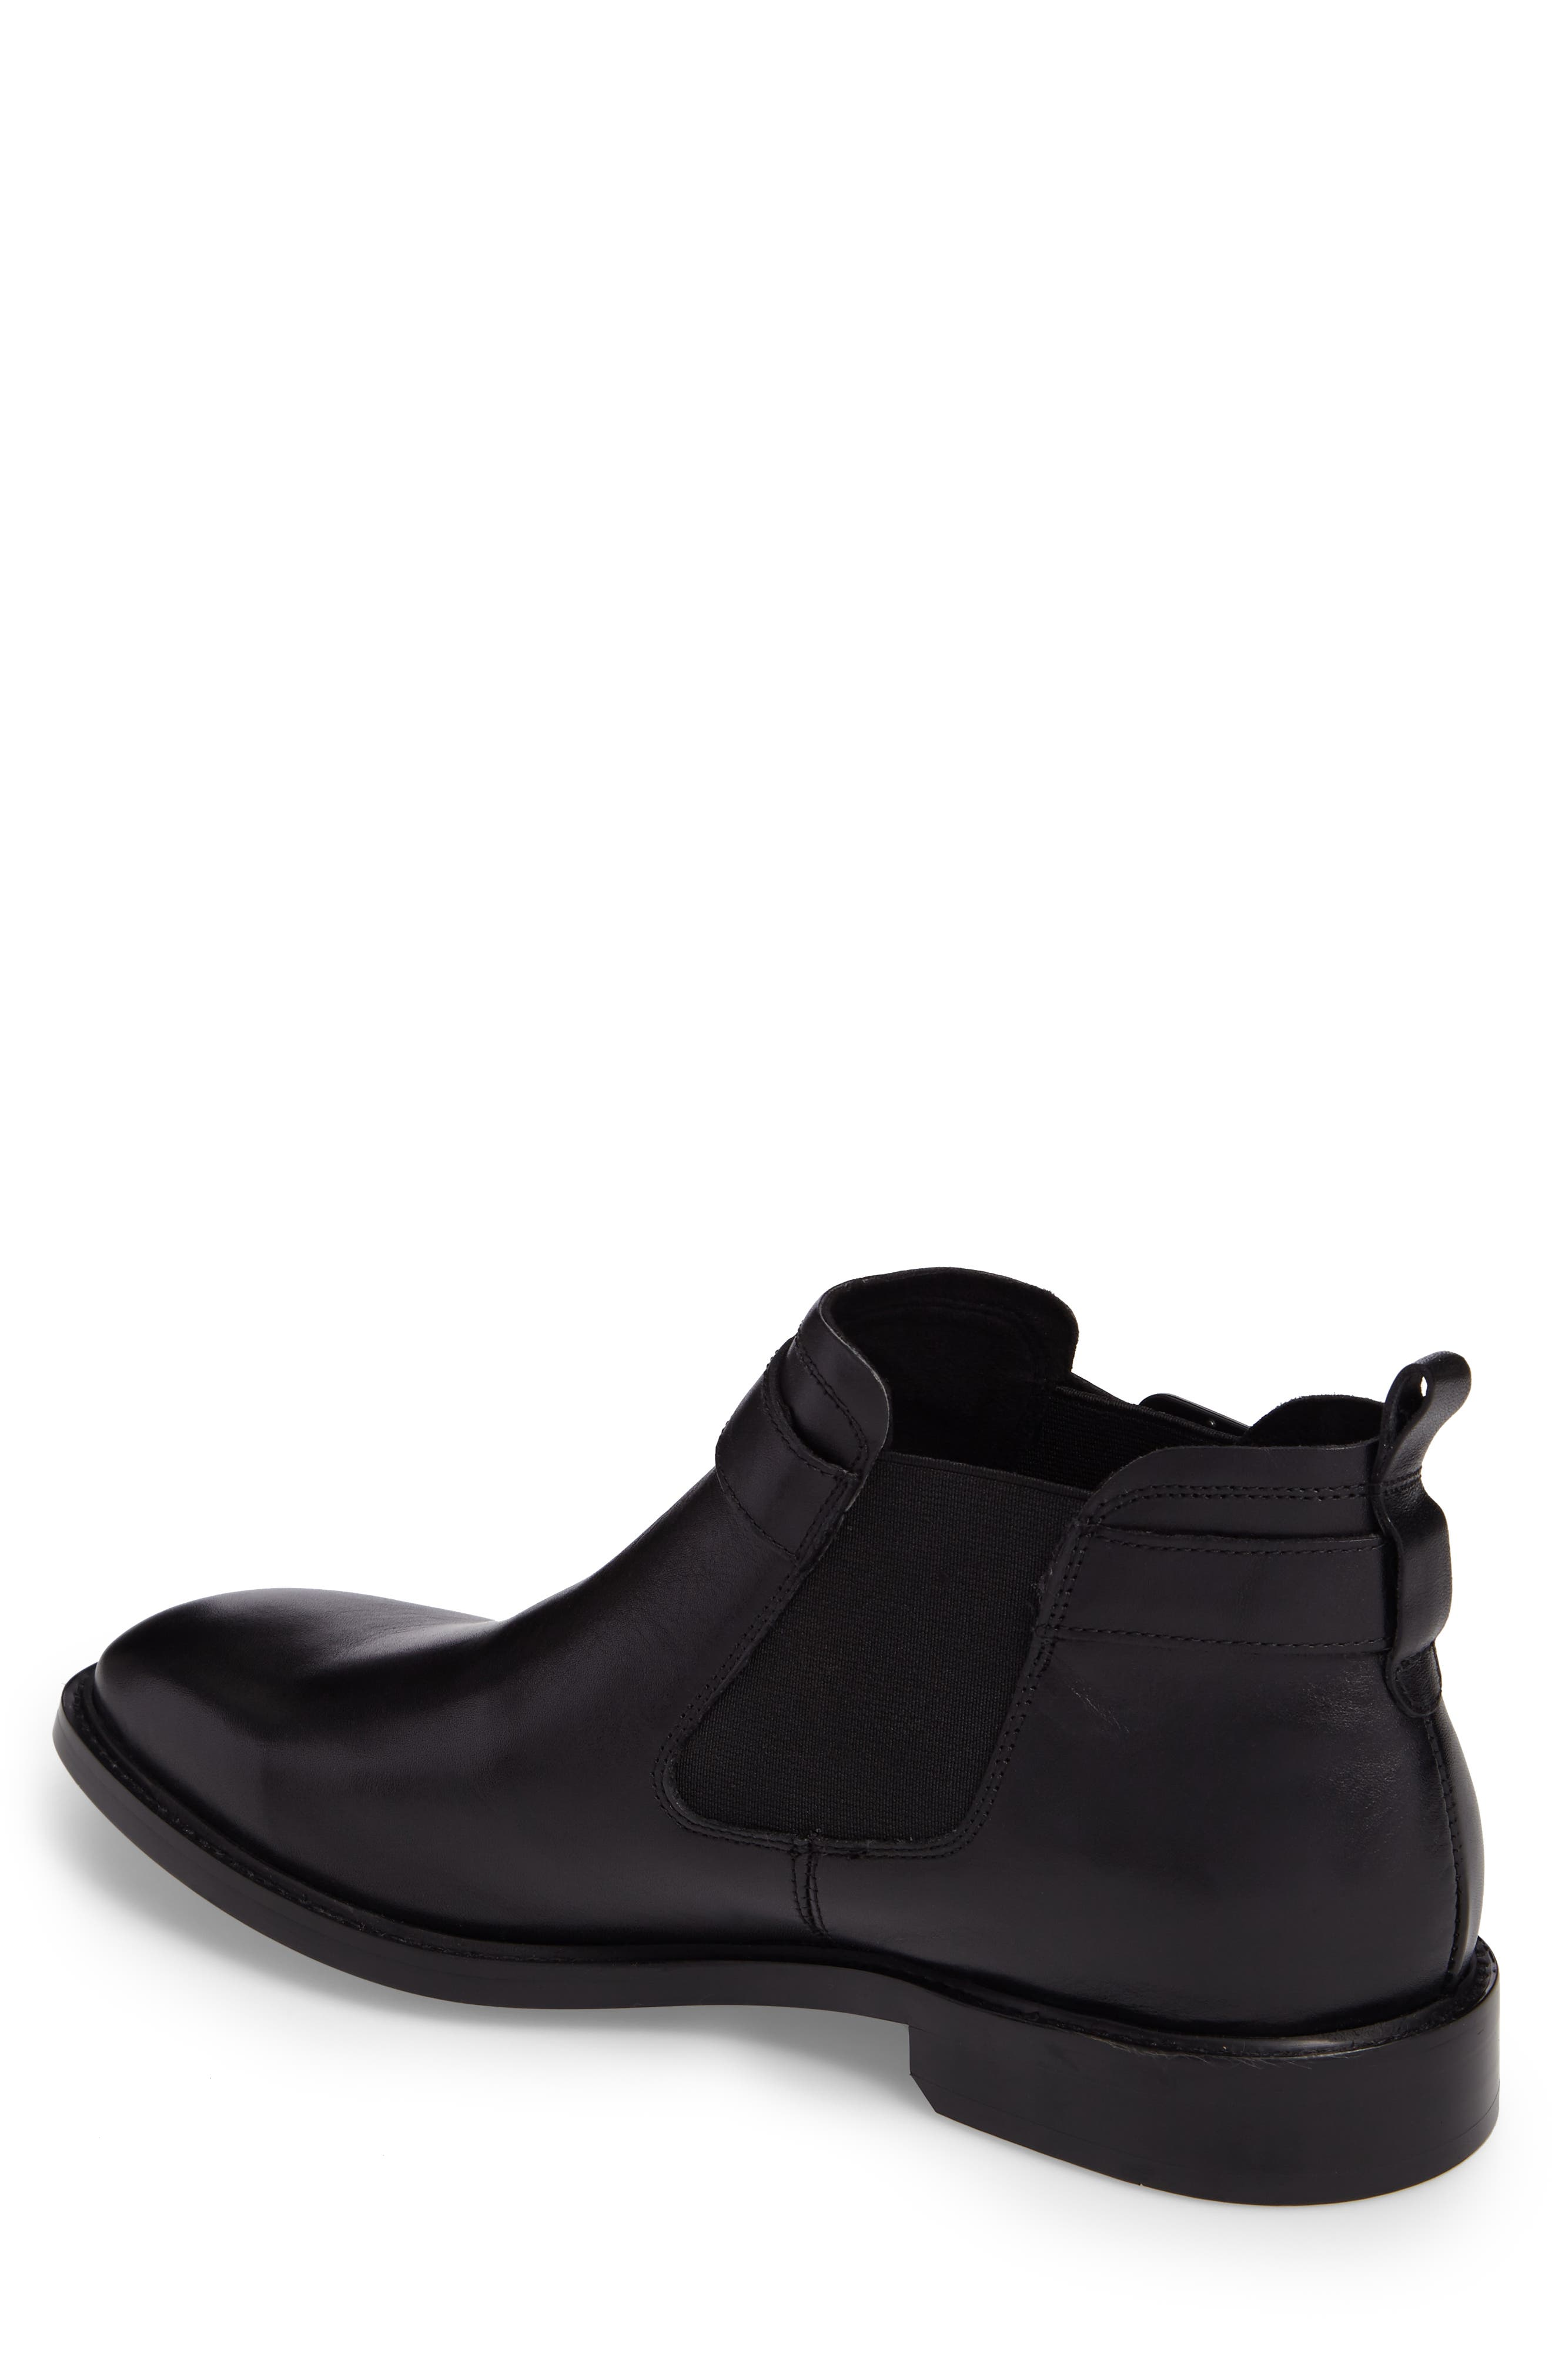 'Sum-Times' Chelsea Boot,                             Alternate thumbnail 2, color,                             Black Leather